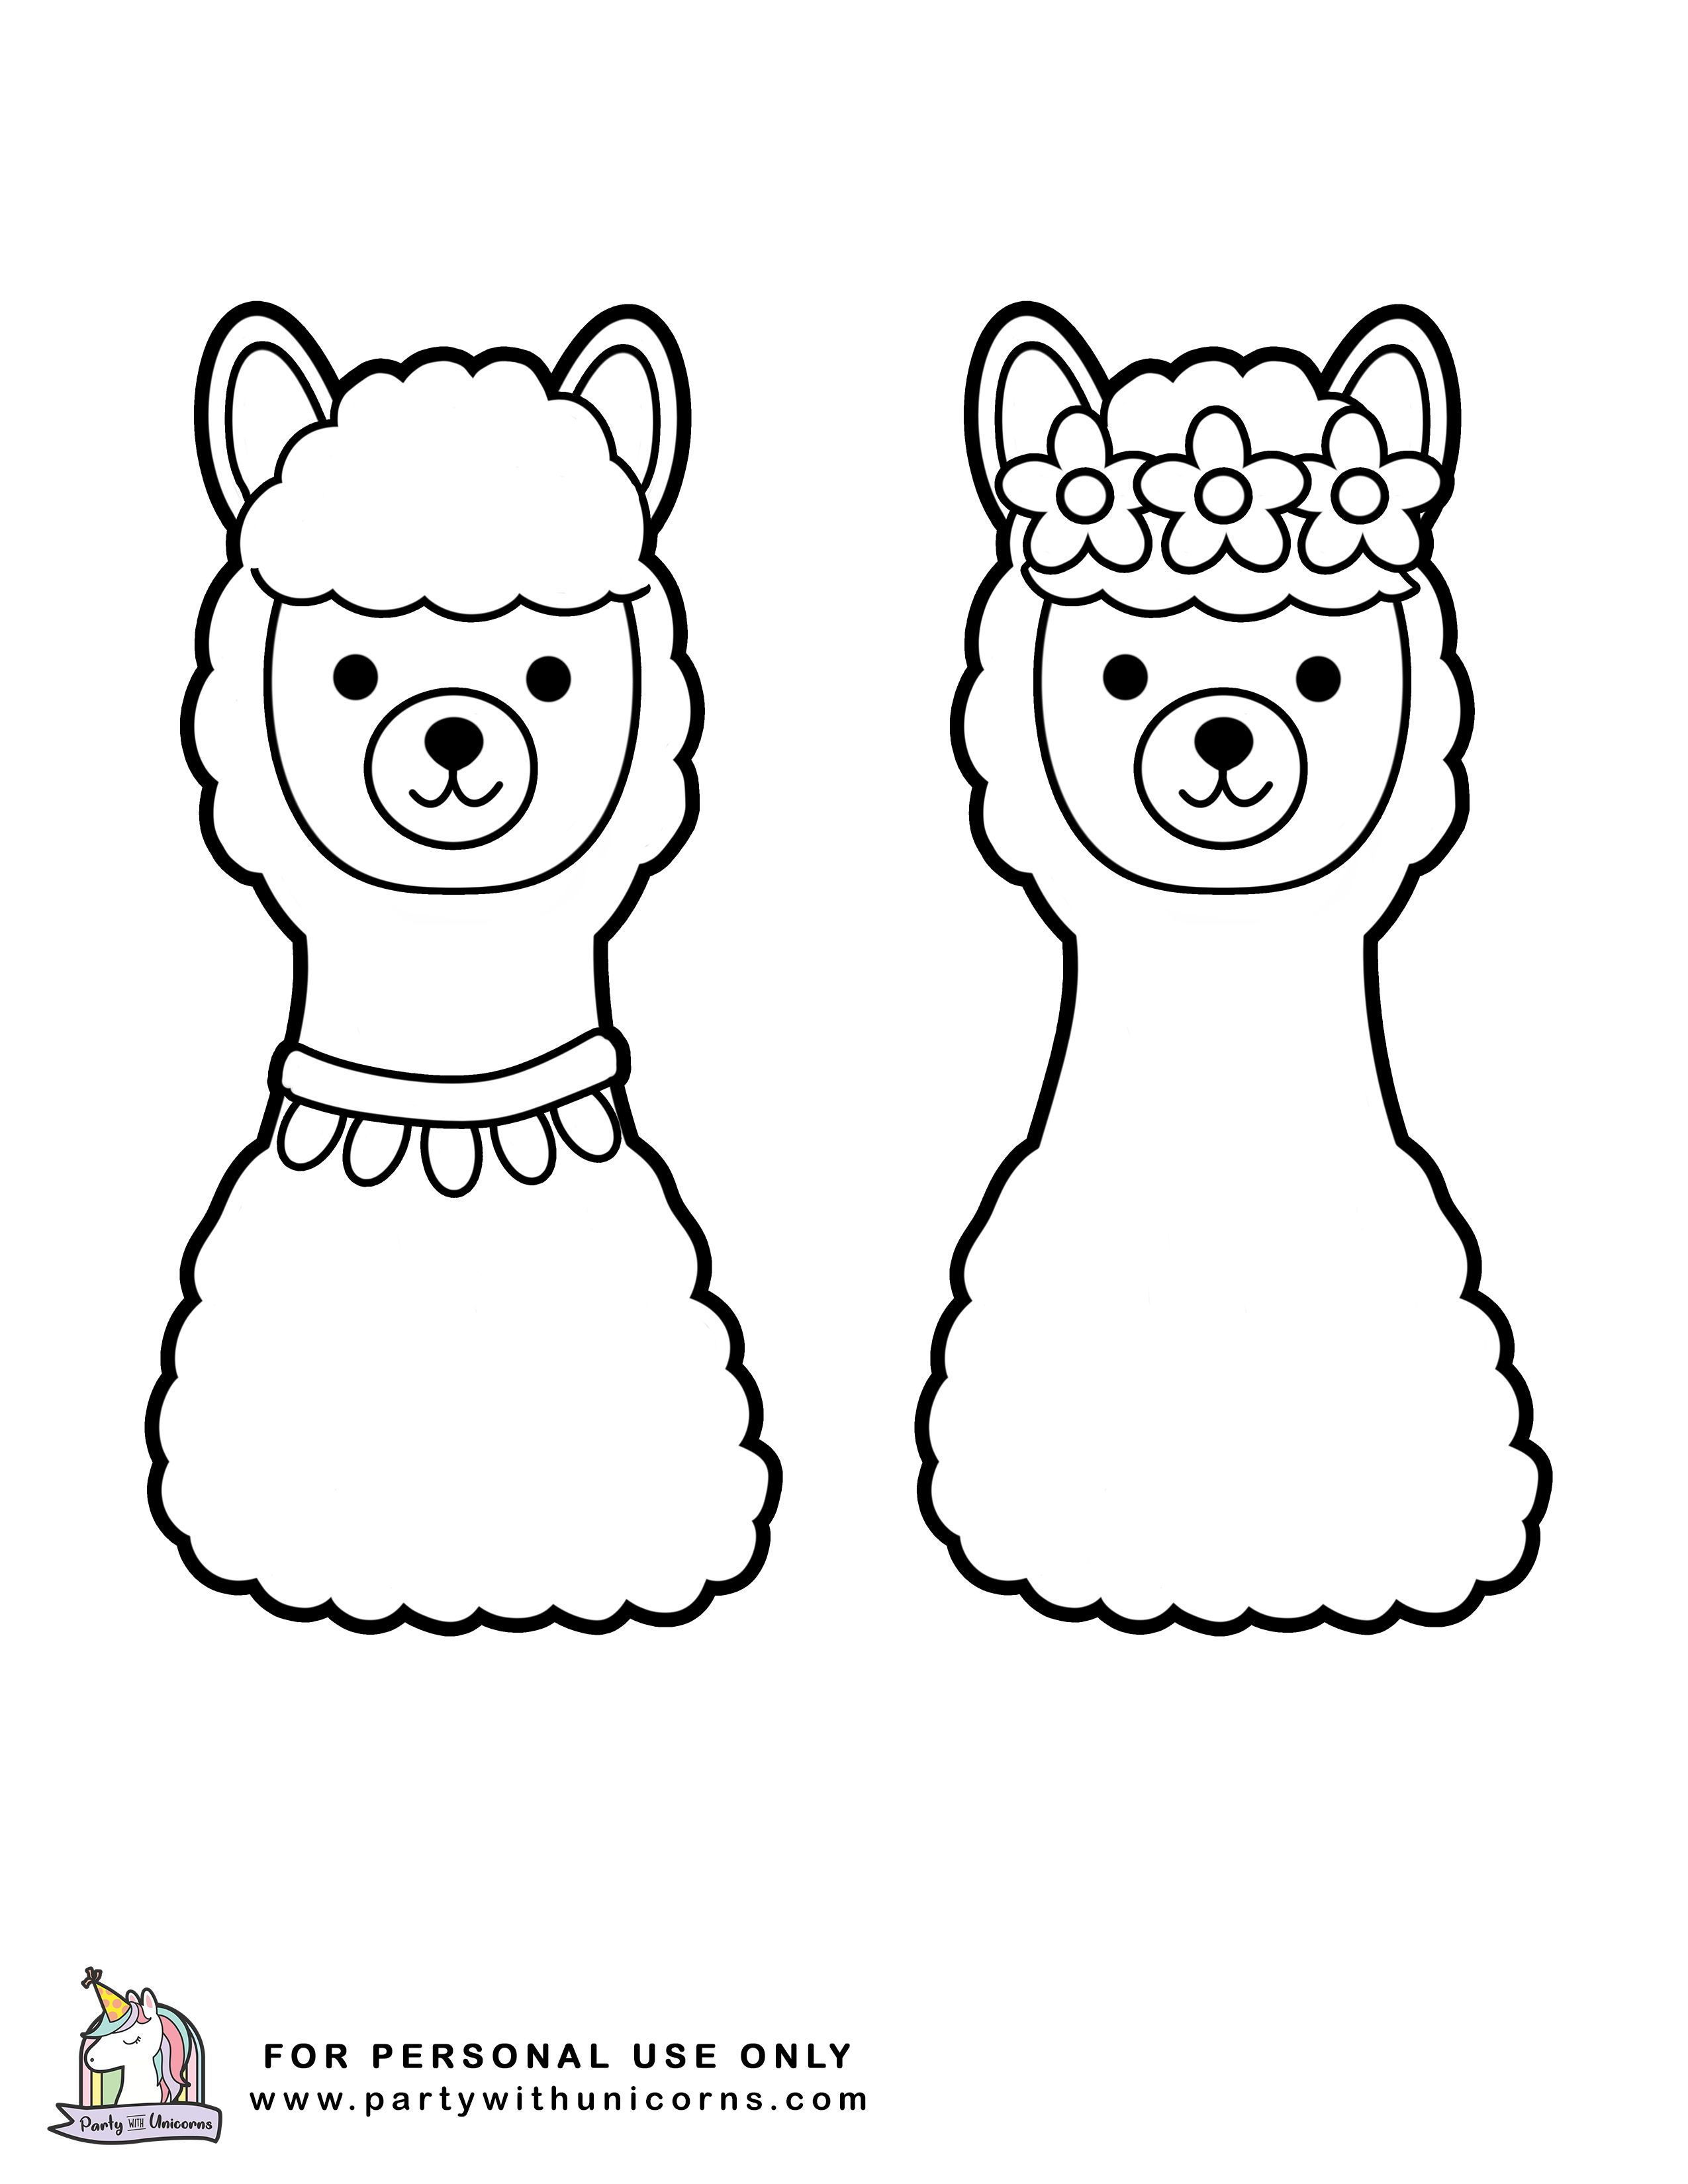 Free Set Of Llama Coloring Pages Unicorn Coloring Pages Coloring Pages Cute Coloring Pages